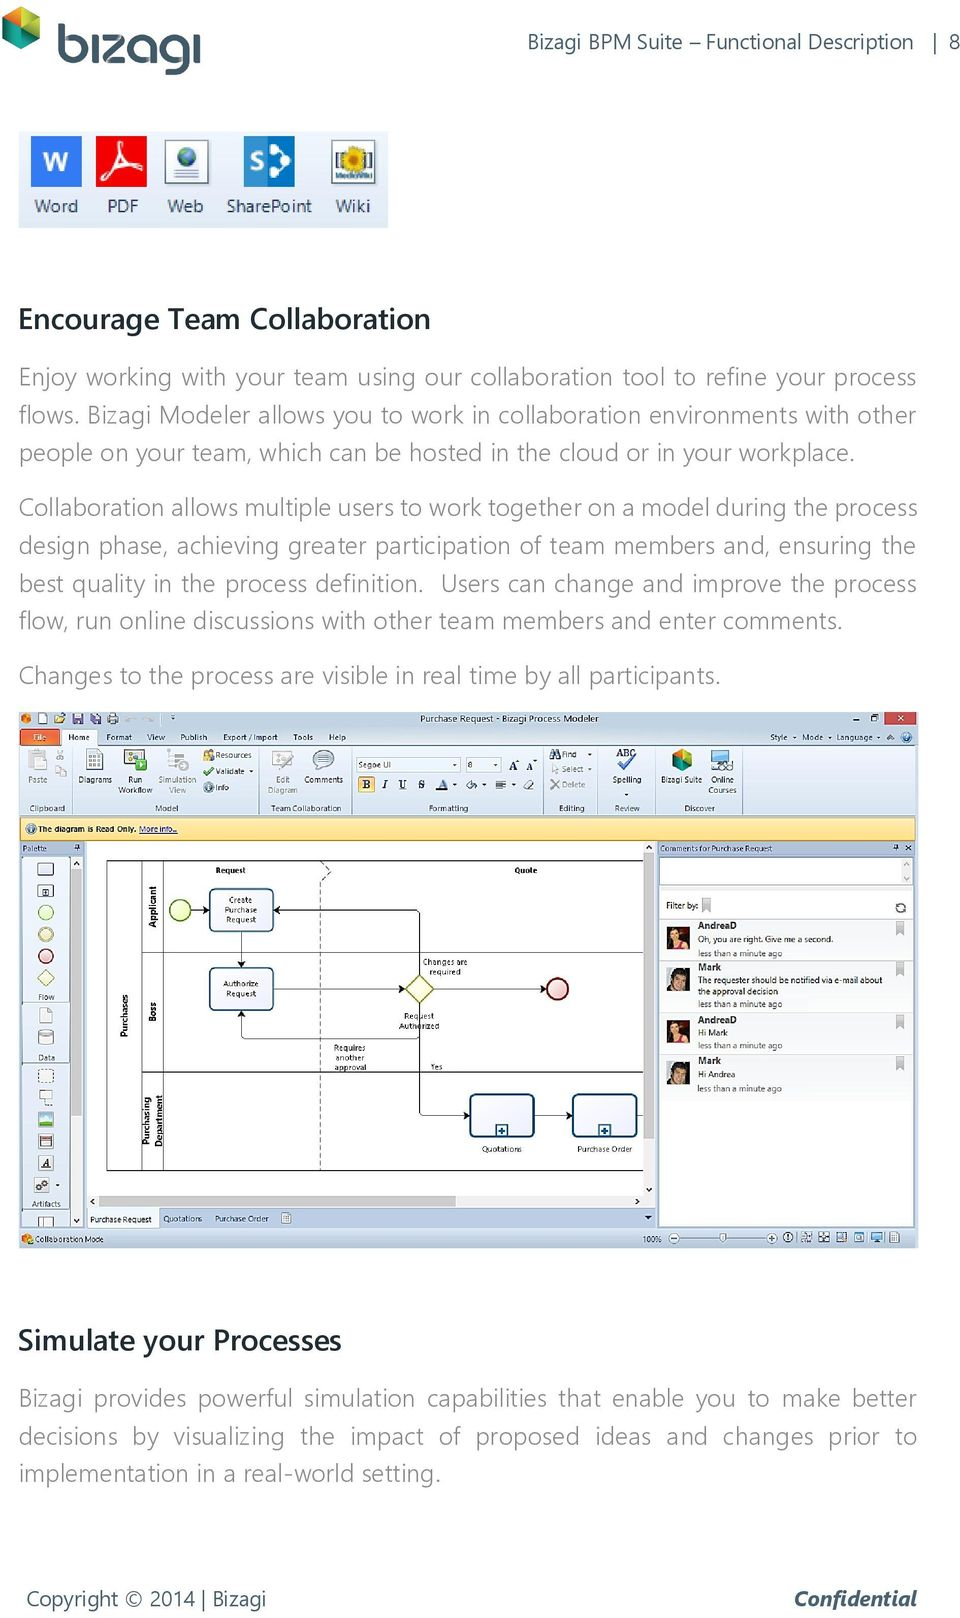 Collaboration allows multiple users to work together on a model during the process design phase, achieving greater participation of team members and, ensuring the best quality in the process